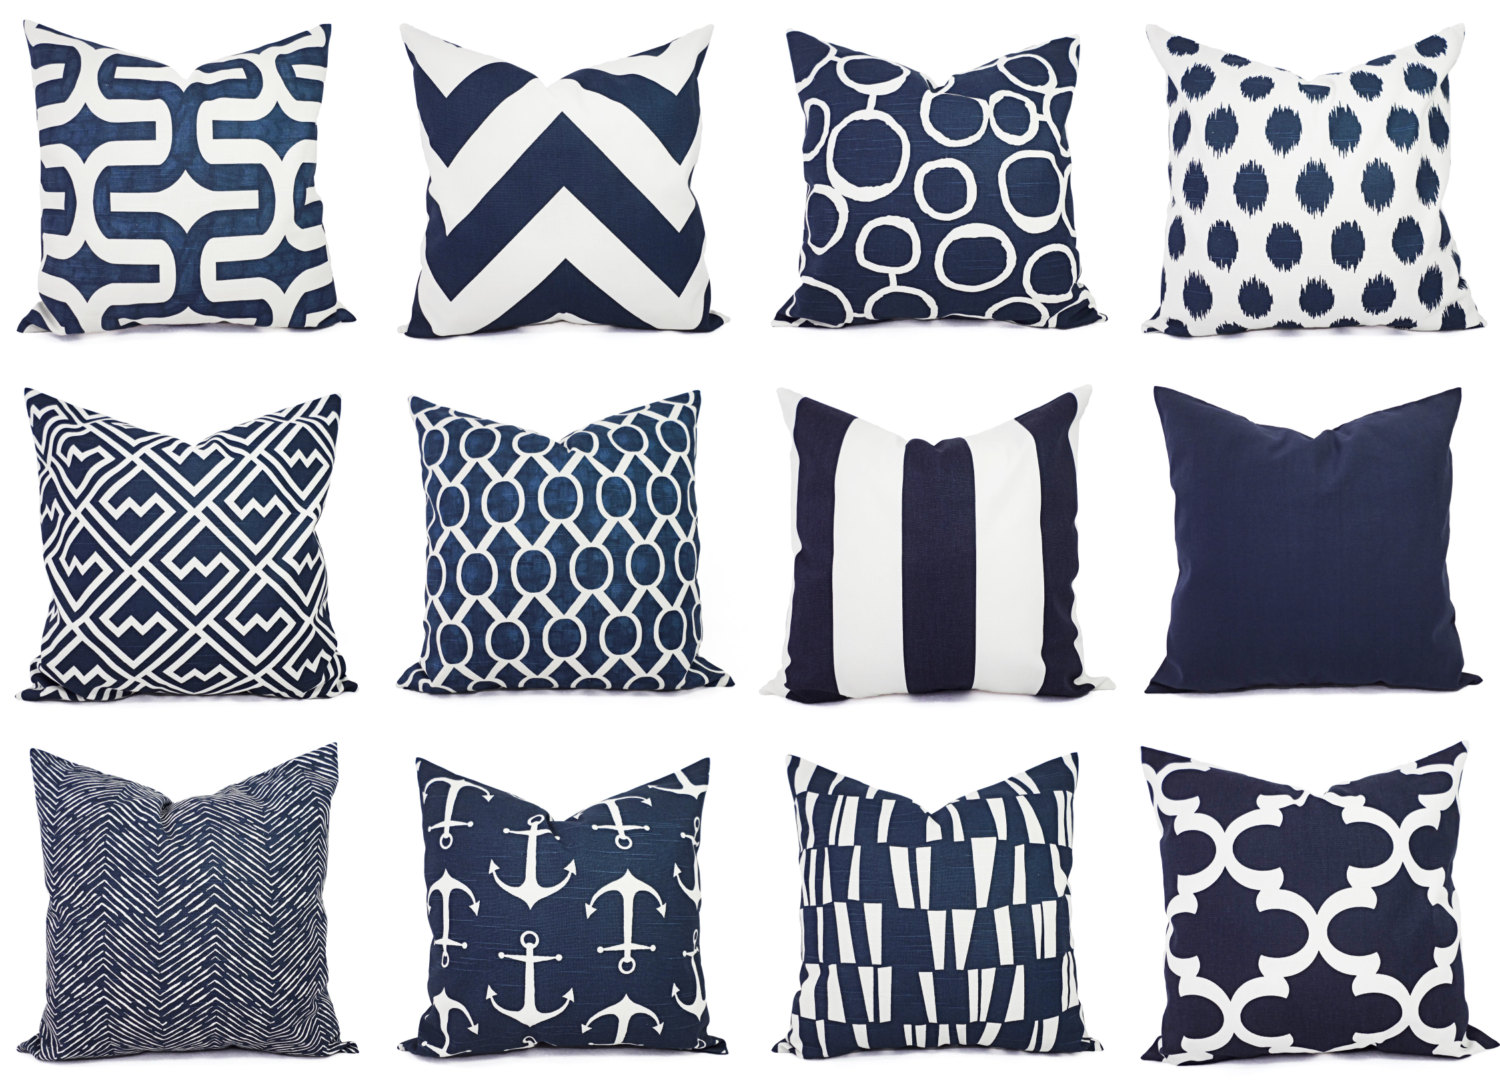 Decorative Pillow Covers | Memory Foam Throw Pillows | Discontinued Pottery Barn Pillow Covers